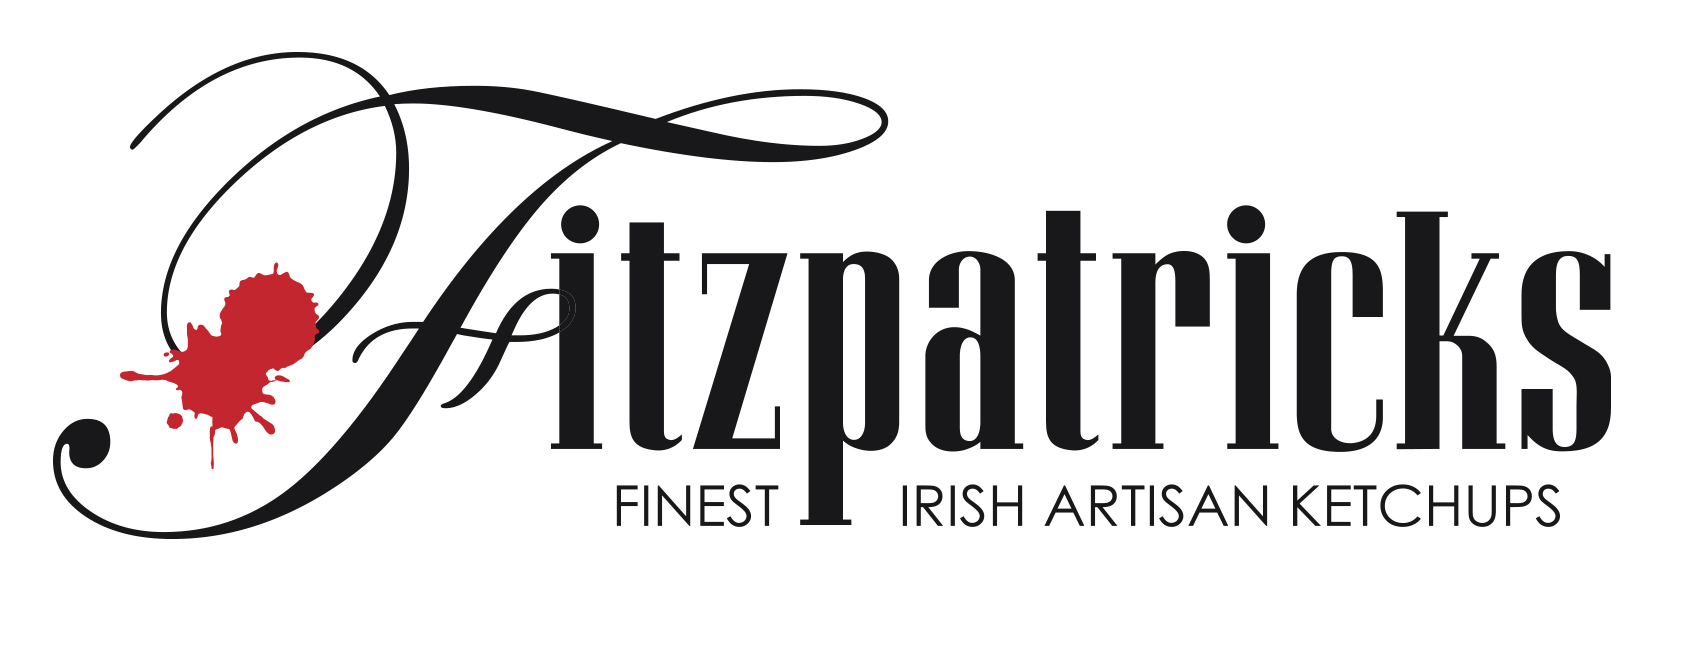 Fitzpatrick's Gourmet Ketchup infused with Poitin